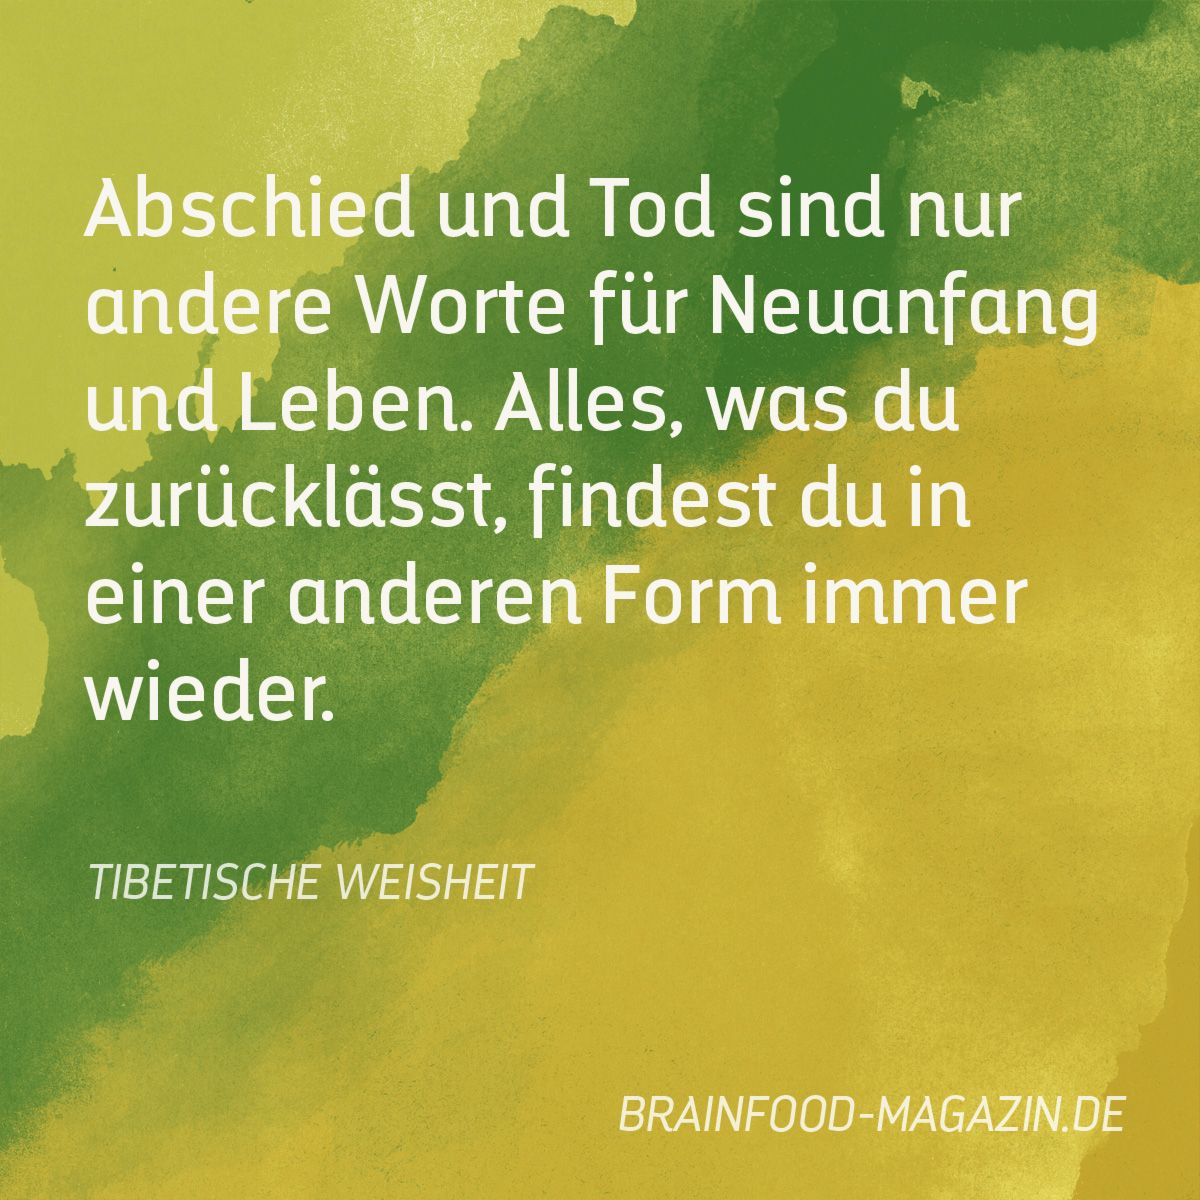 1000+ images about abschied - trauer on pinterest   rainbow bridge